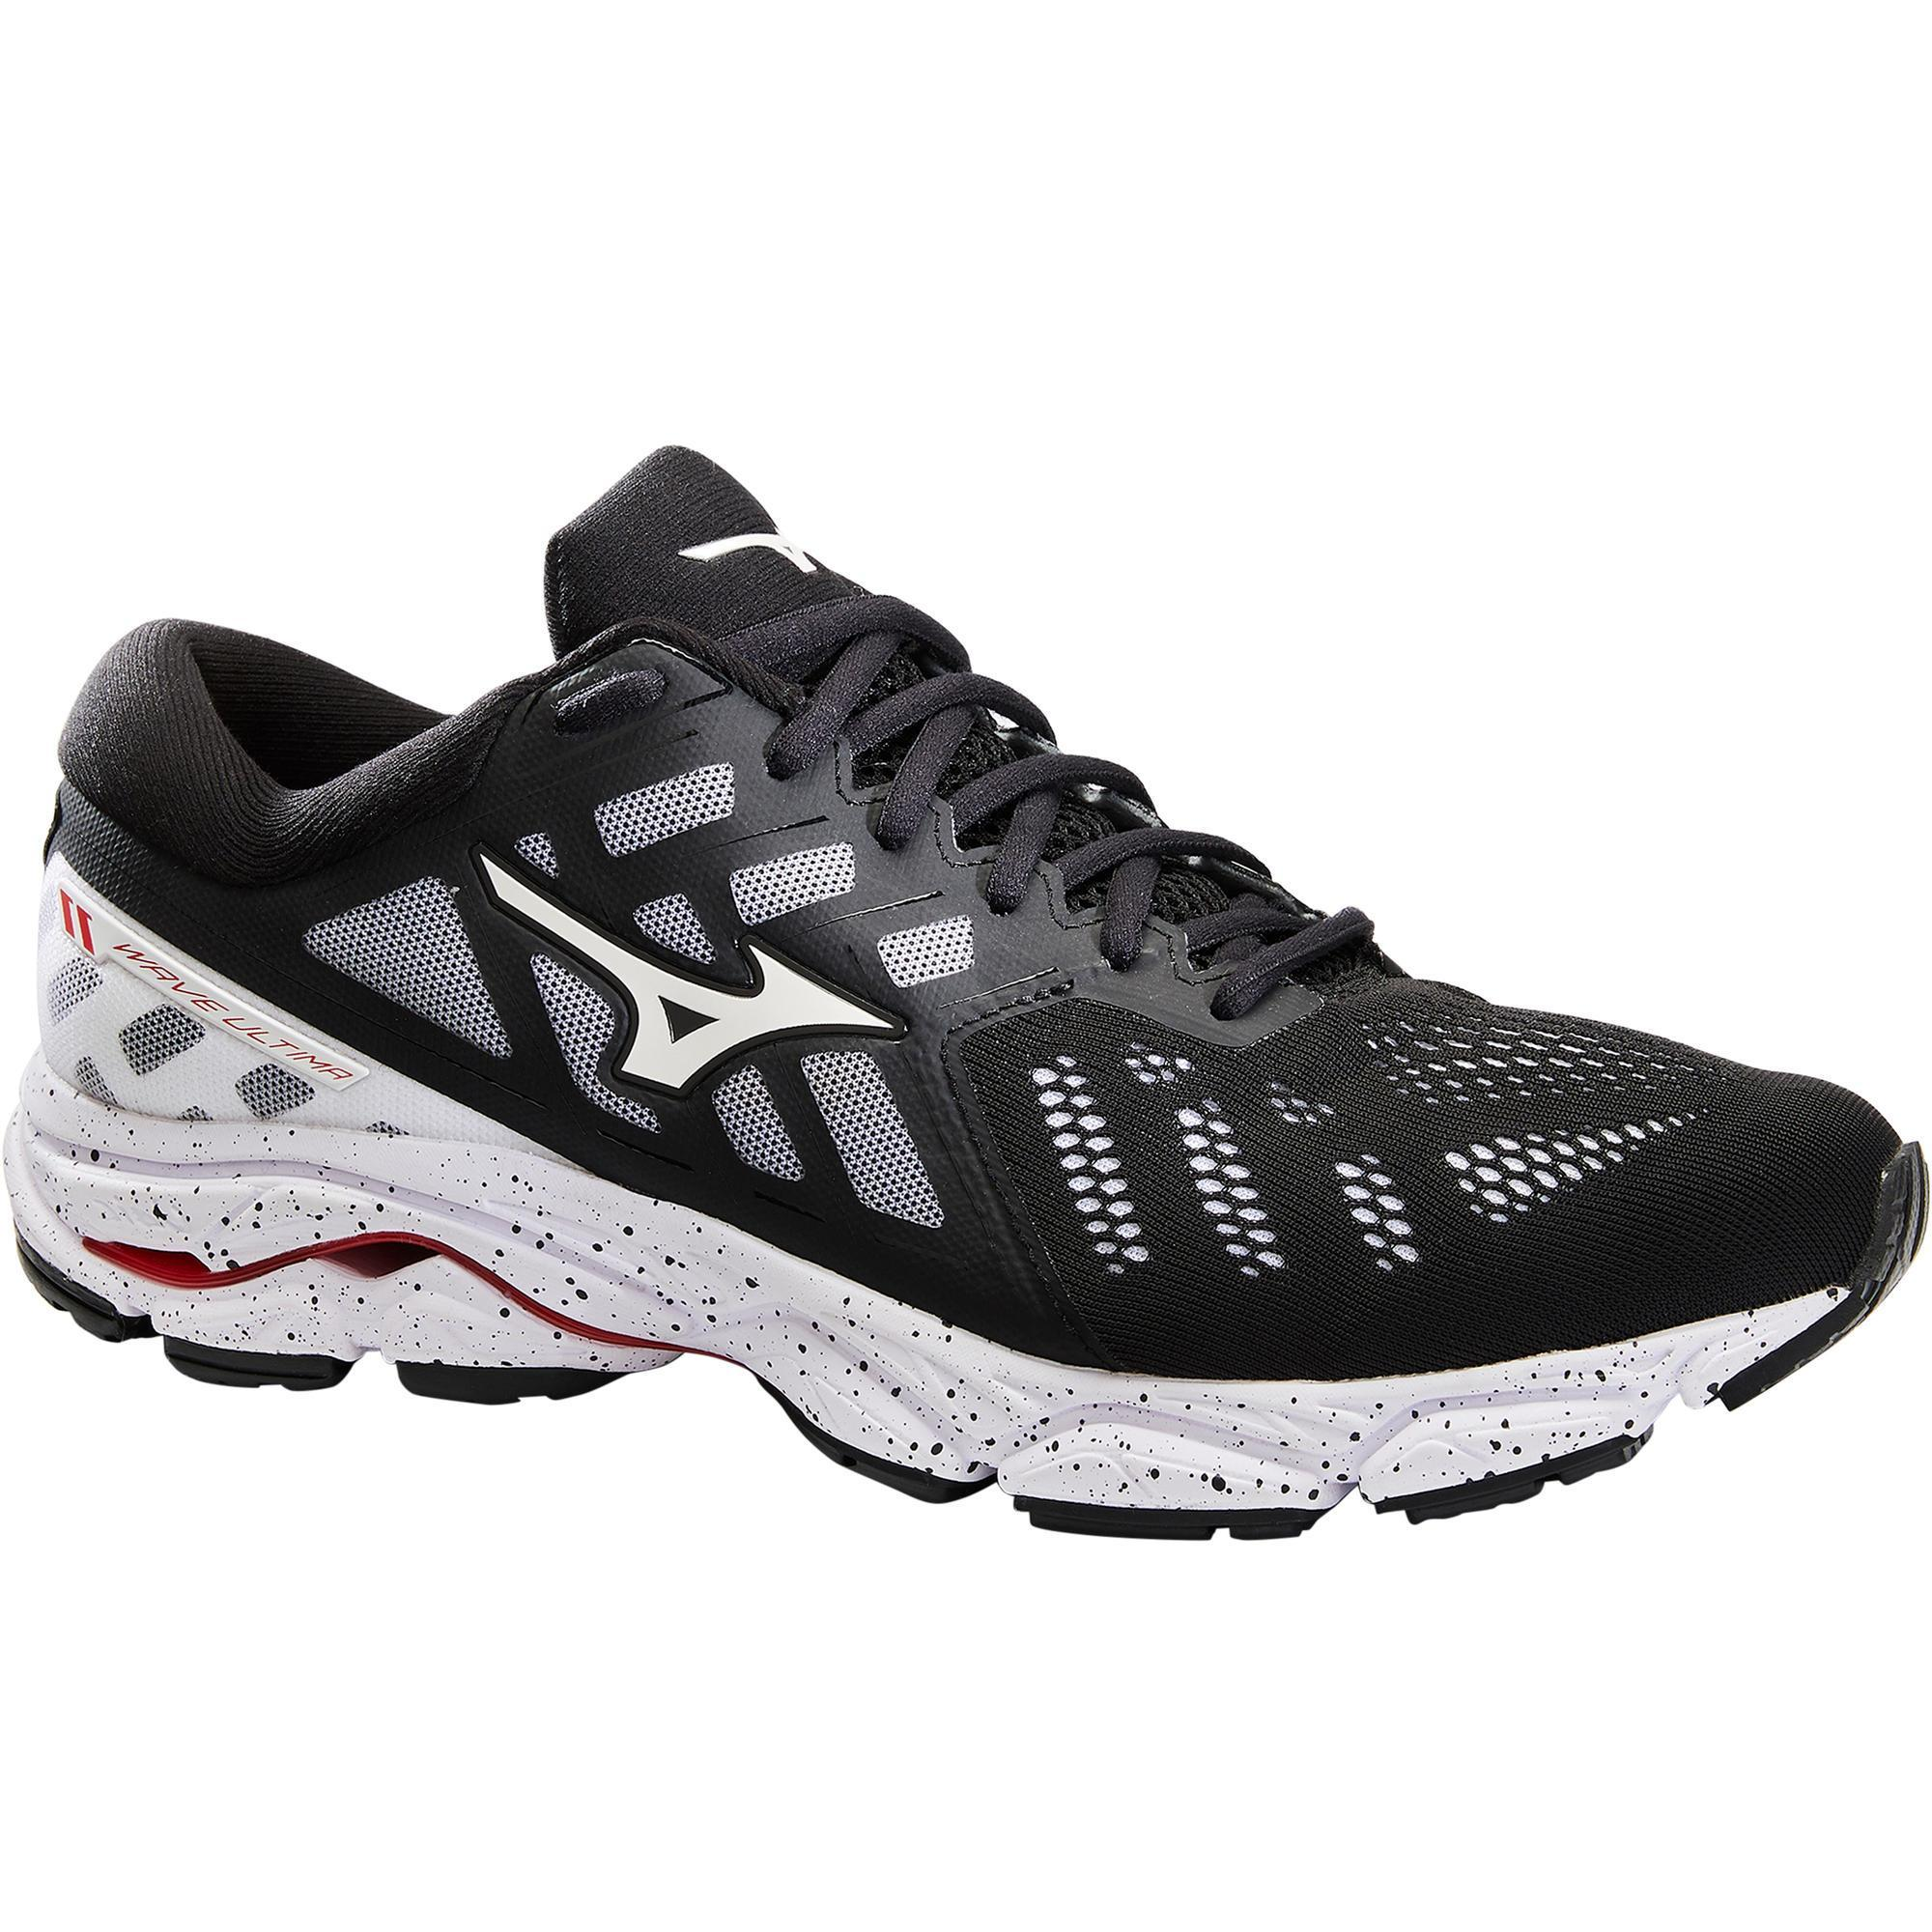 9fb124ffc1ec Comprar Zapatillas de Running Online | Decathlon